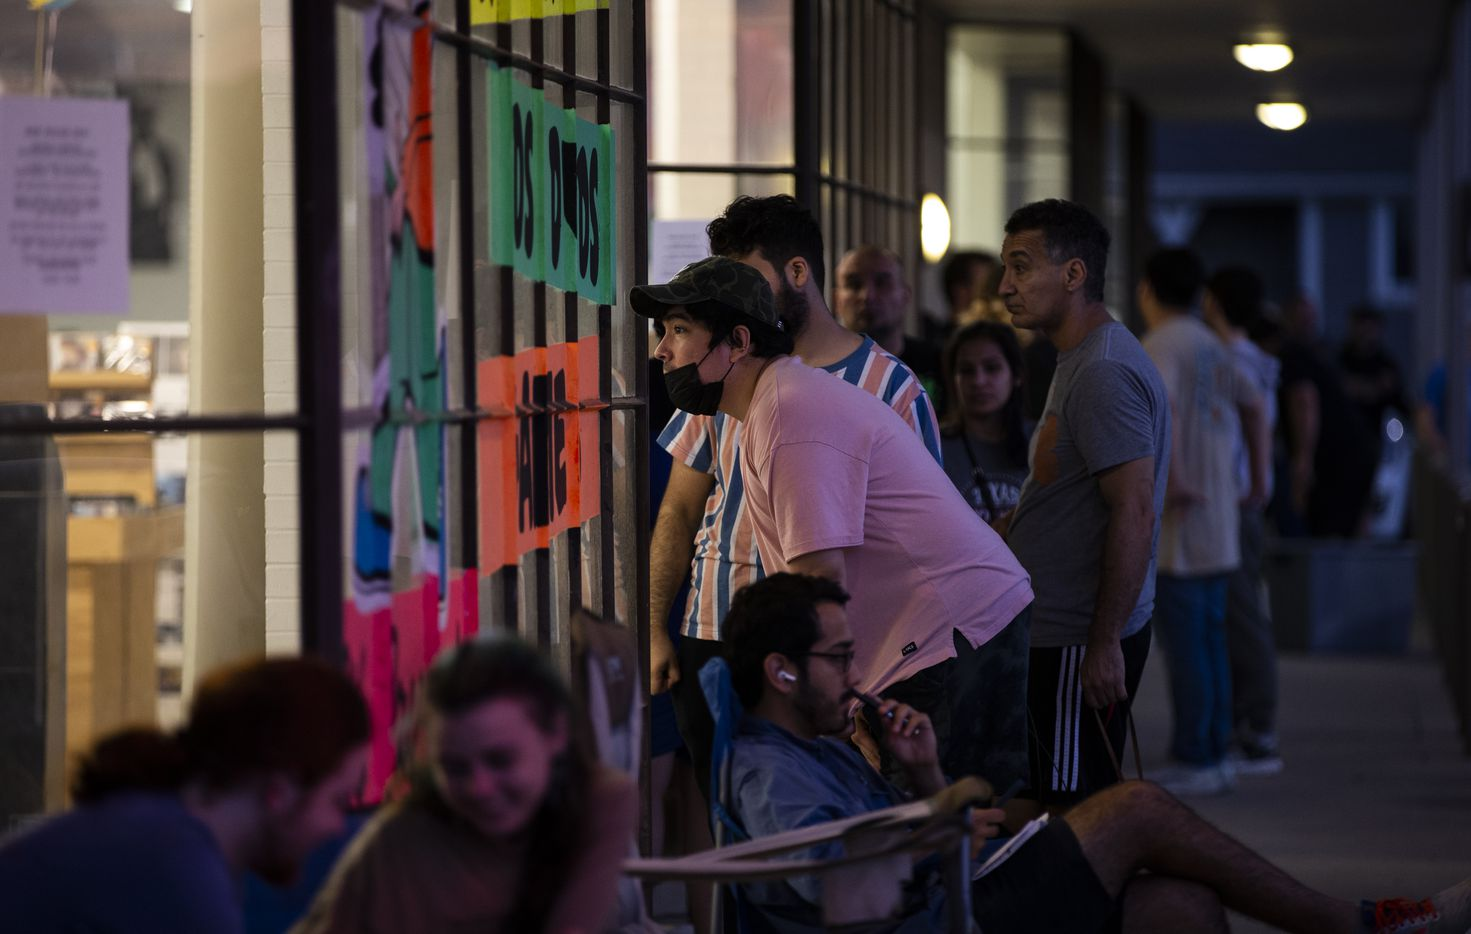 Juan Soto looks through the window at Josey Records early Saturday morning on Record Store Day. Soto waited in line since 11 p.m. Friday for a chance to buy a Lady Gaga album on vinyl.